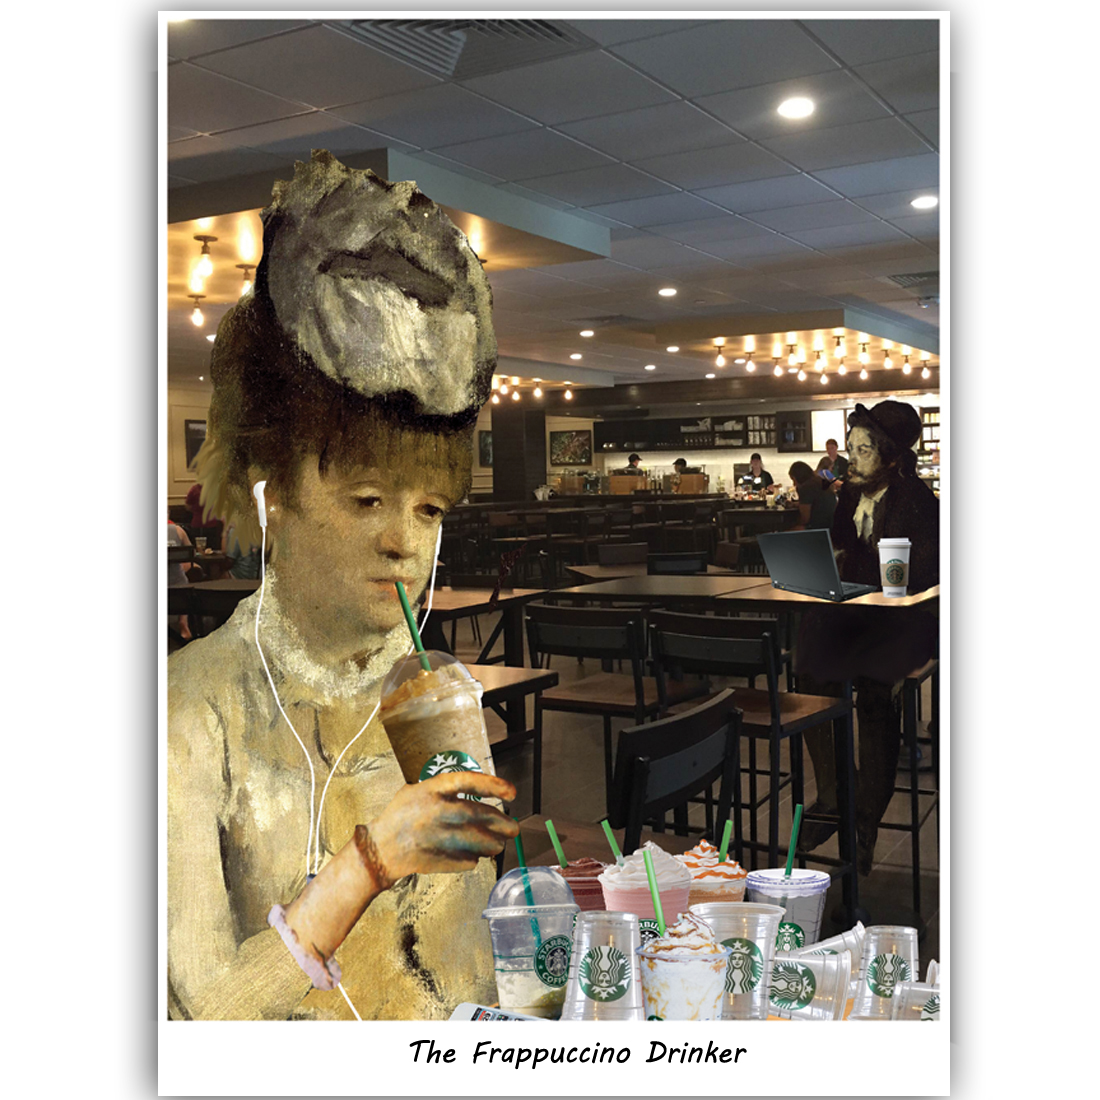 The Frappuccino Drinker